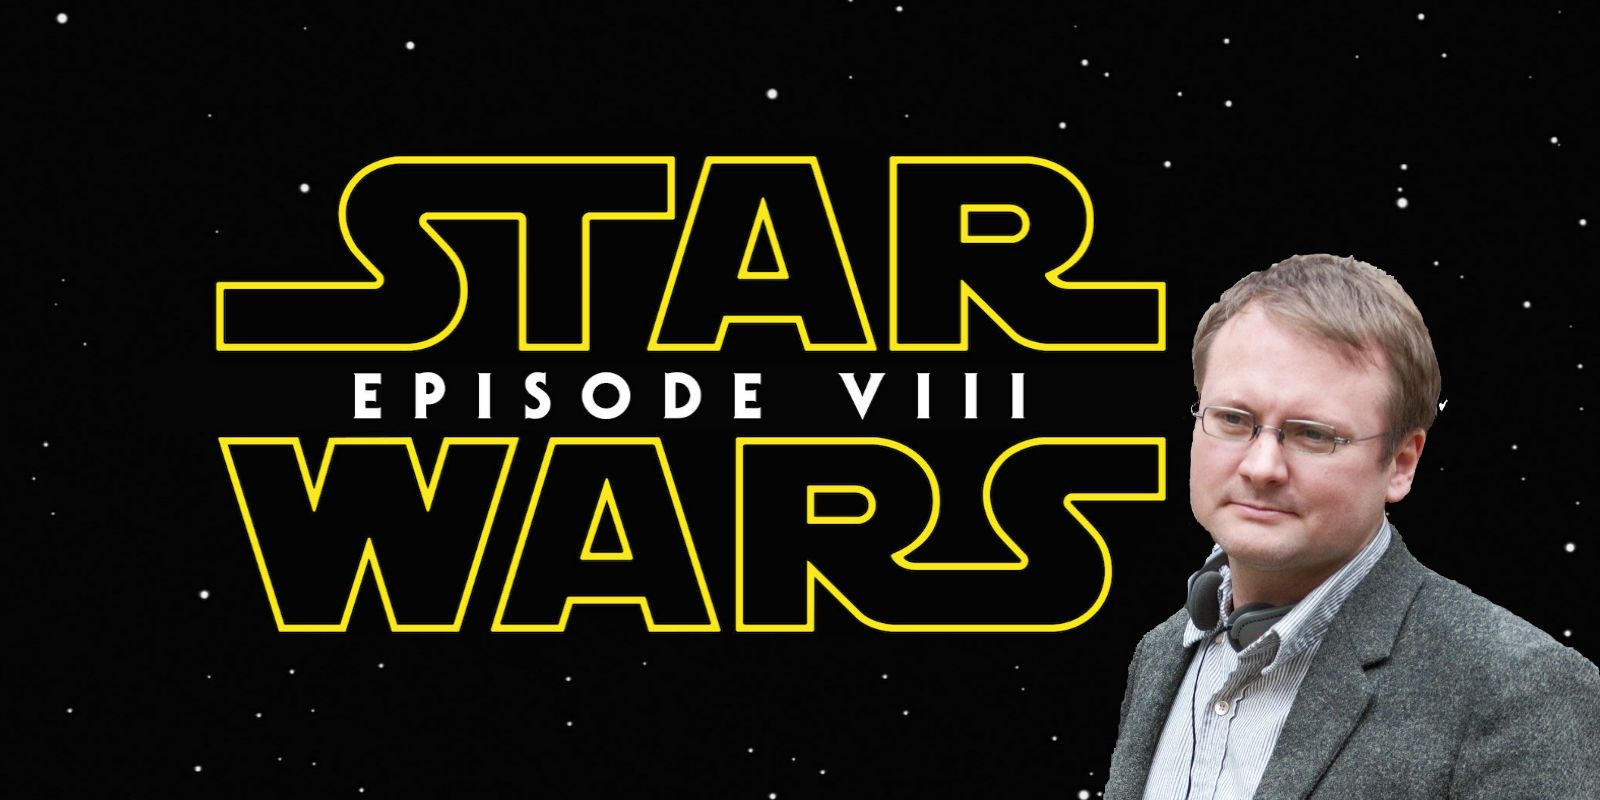 Star Wars 8 Director Rian Johnson Defends the Prequel Trilogy